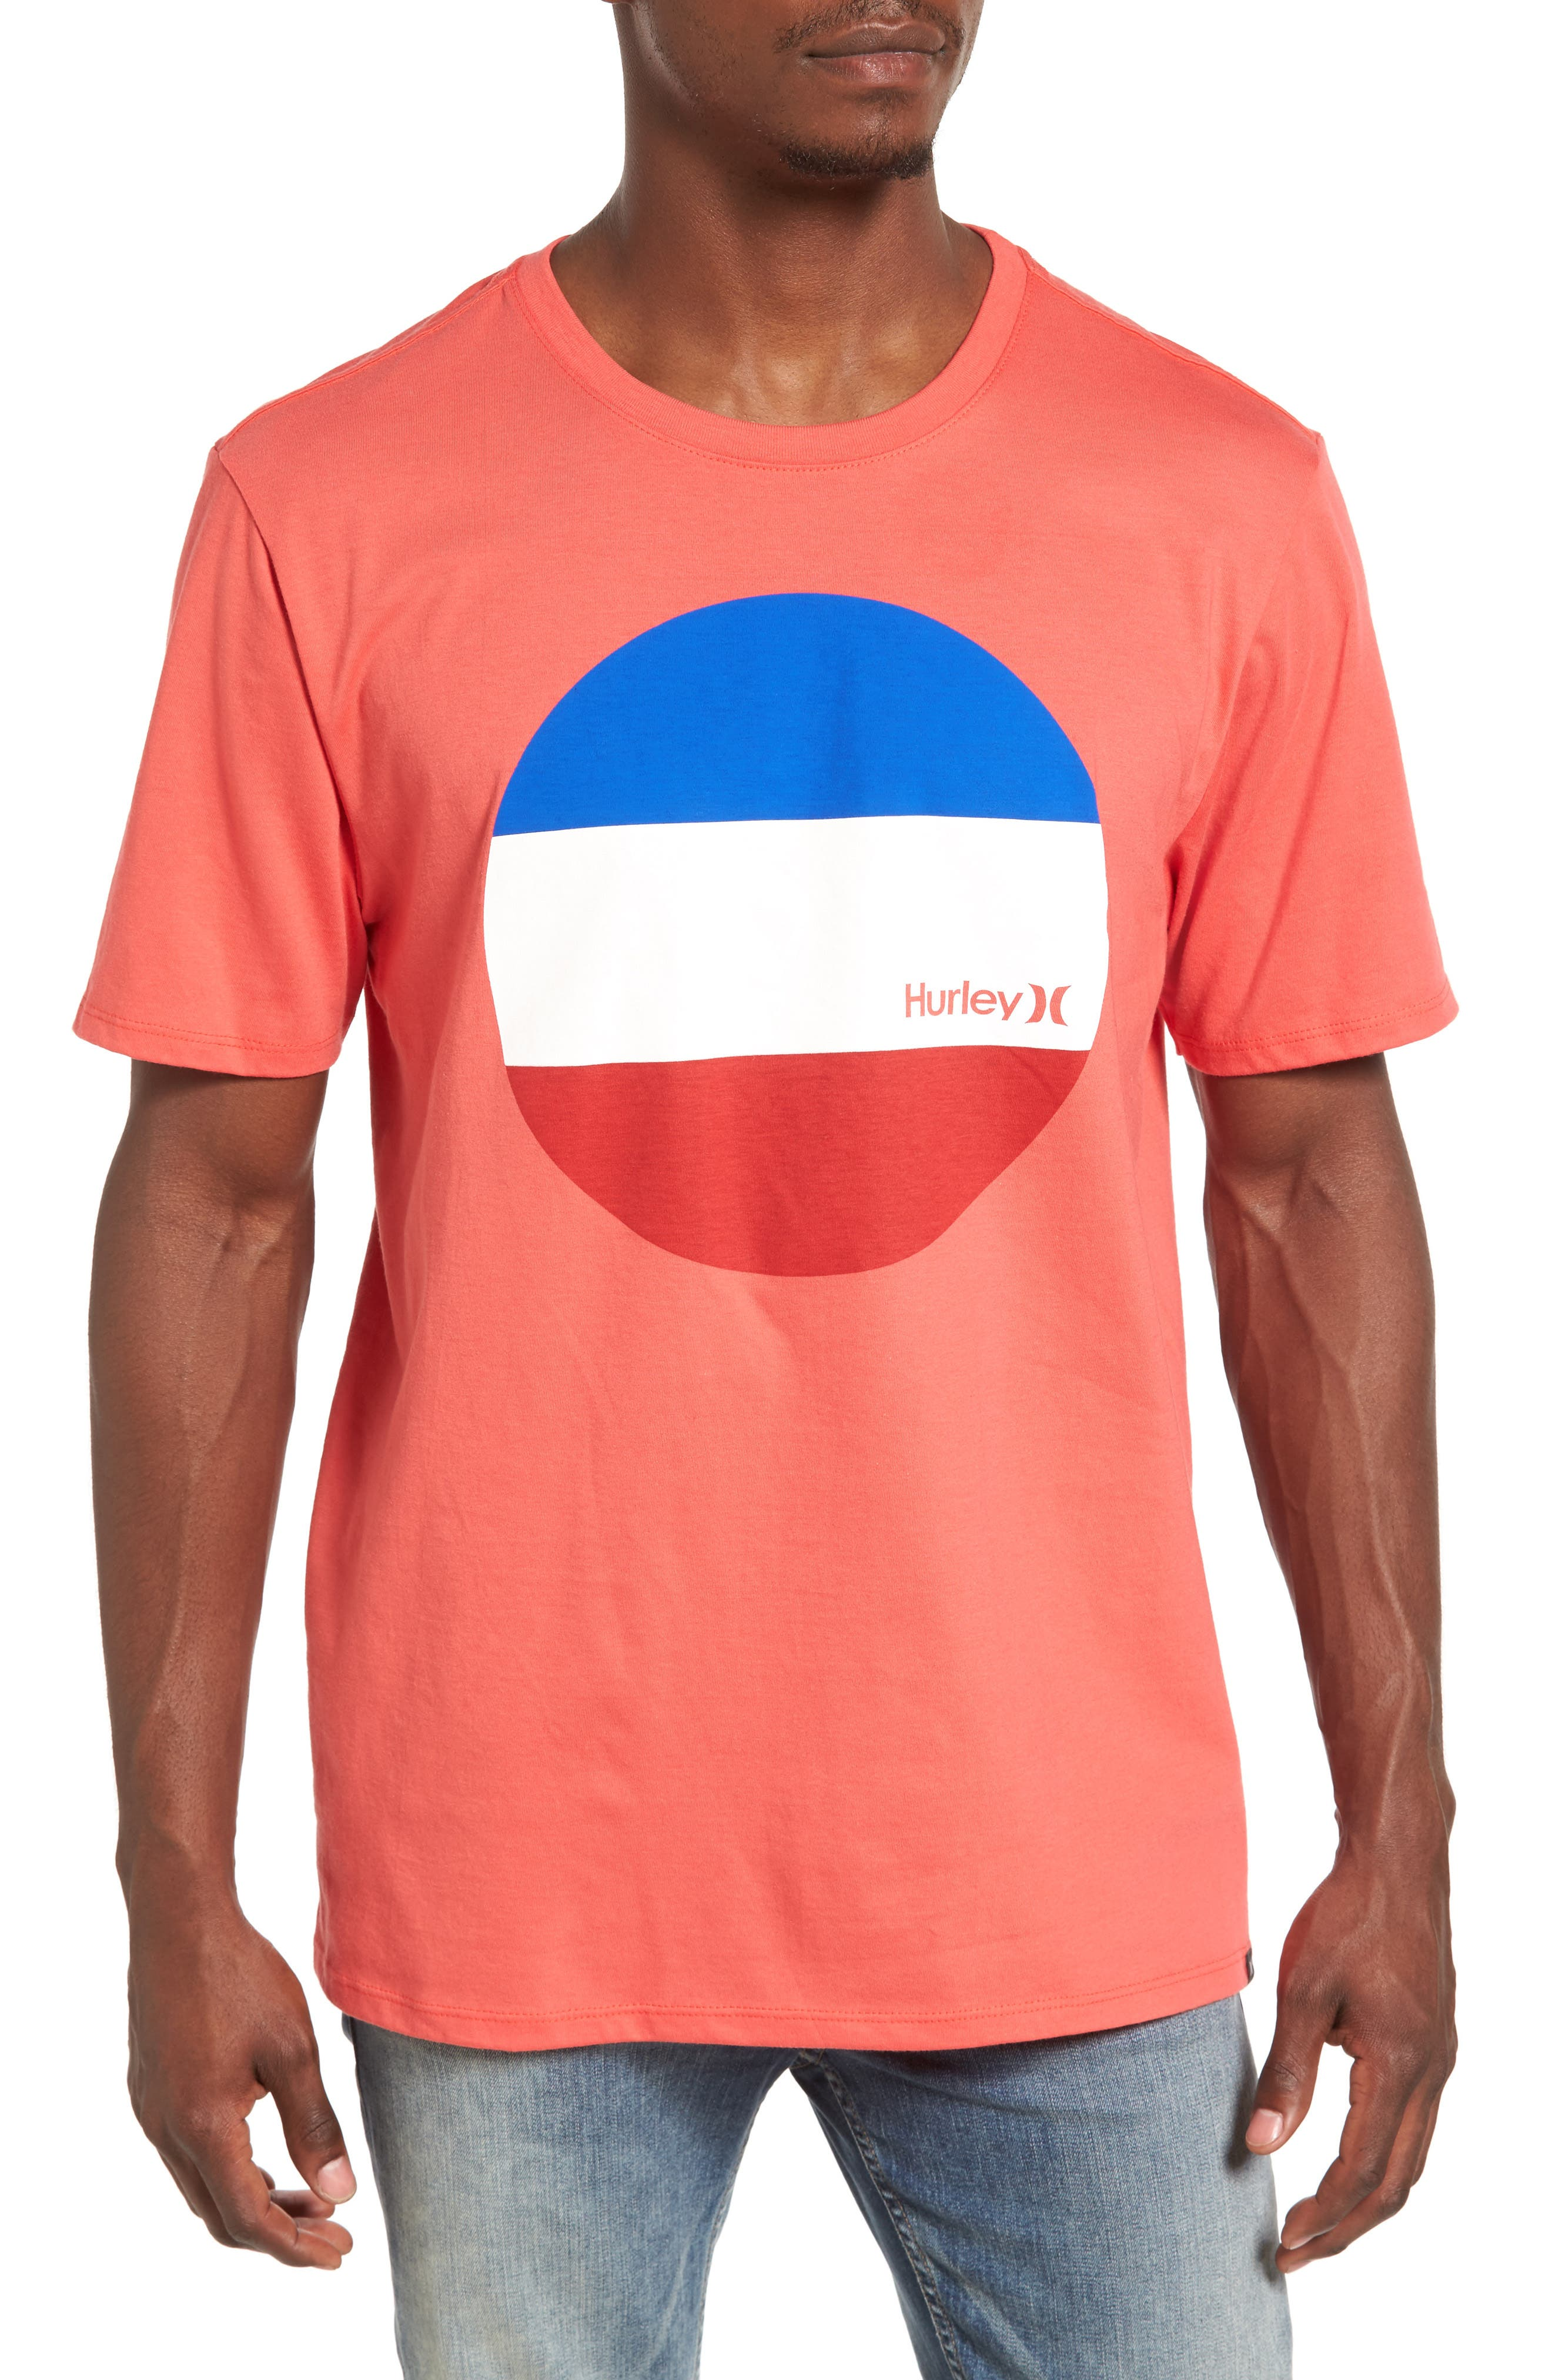 HURLEY Circular Block Graphic T-Shirt